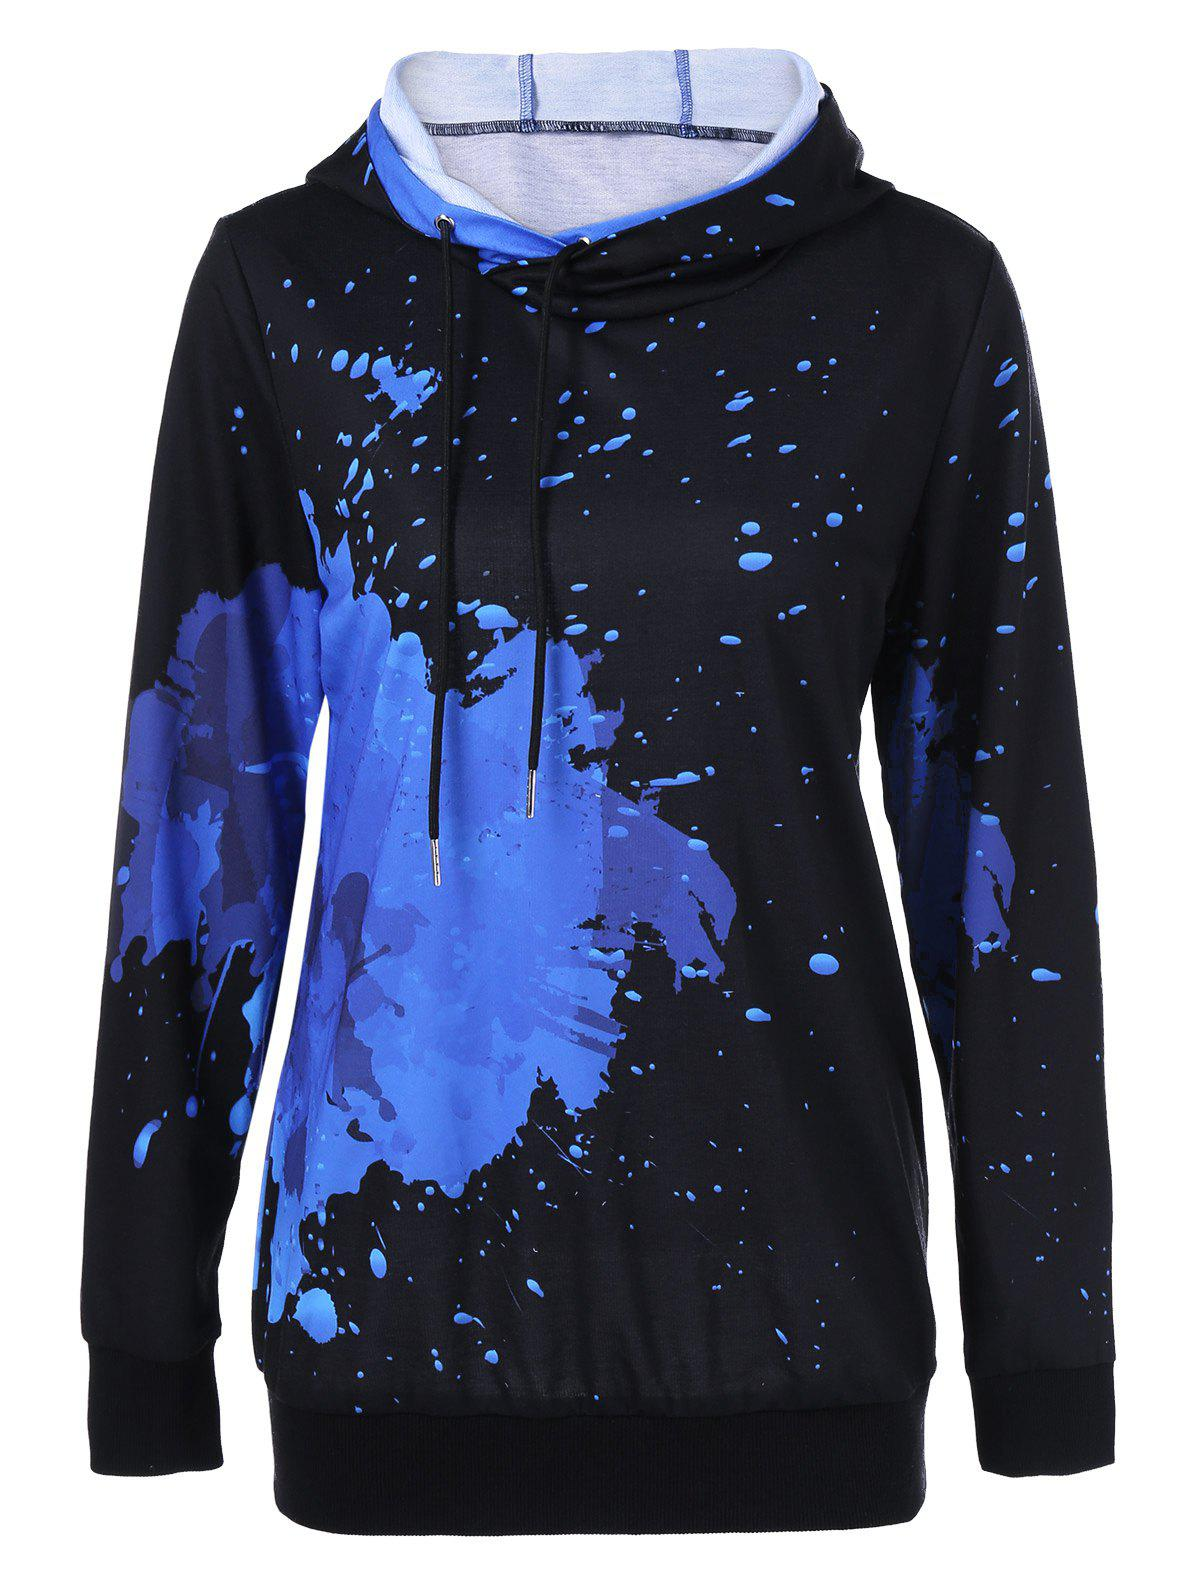 Hot Splatter Paint Drawstring Hoodie